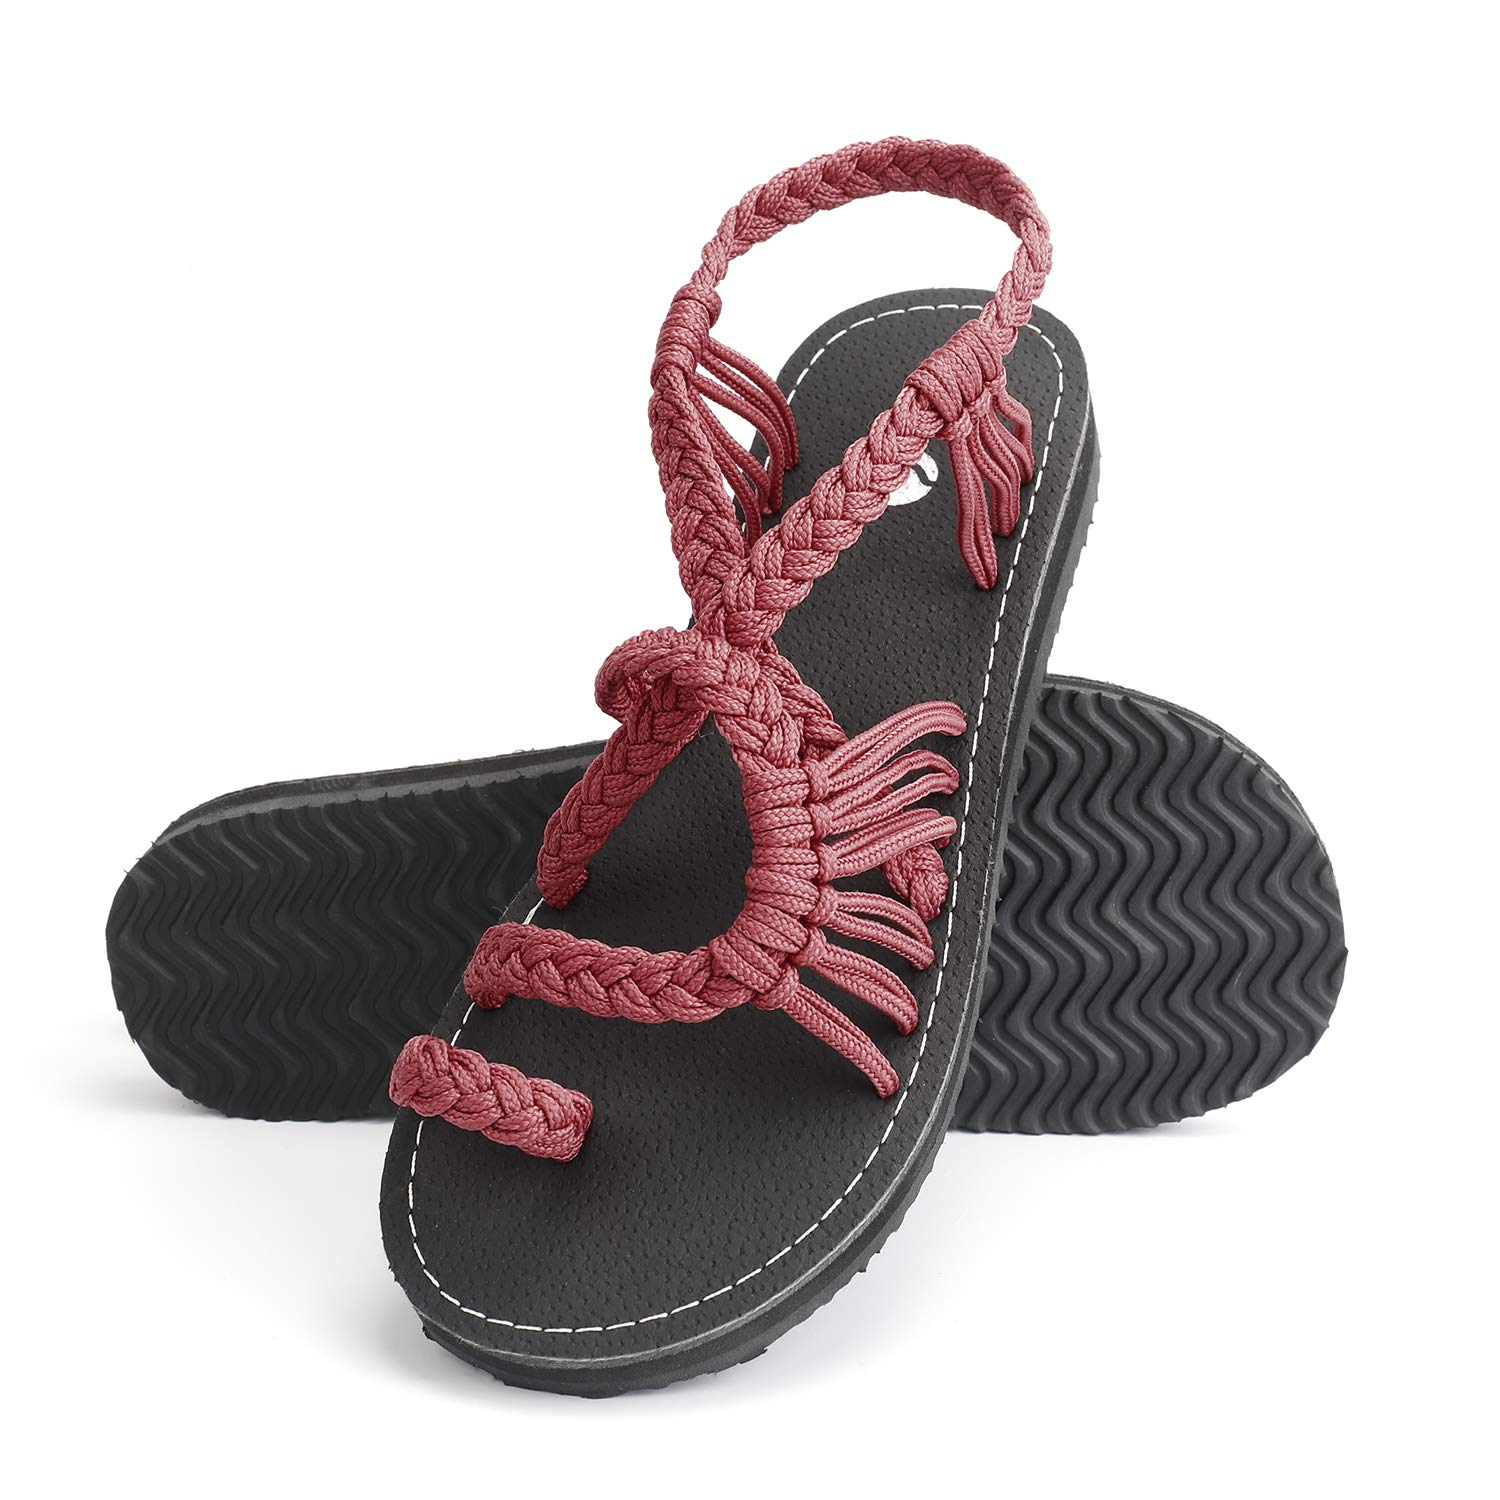 Rekayla Flat Sandals - Braided Rope Walking Sandals for Women